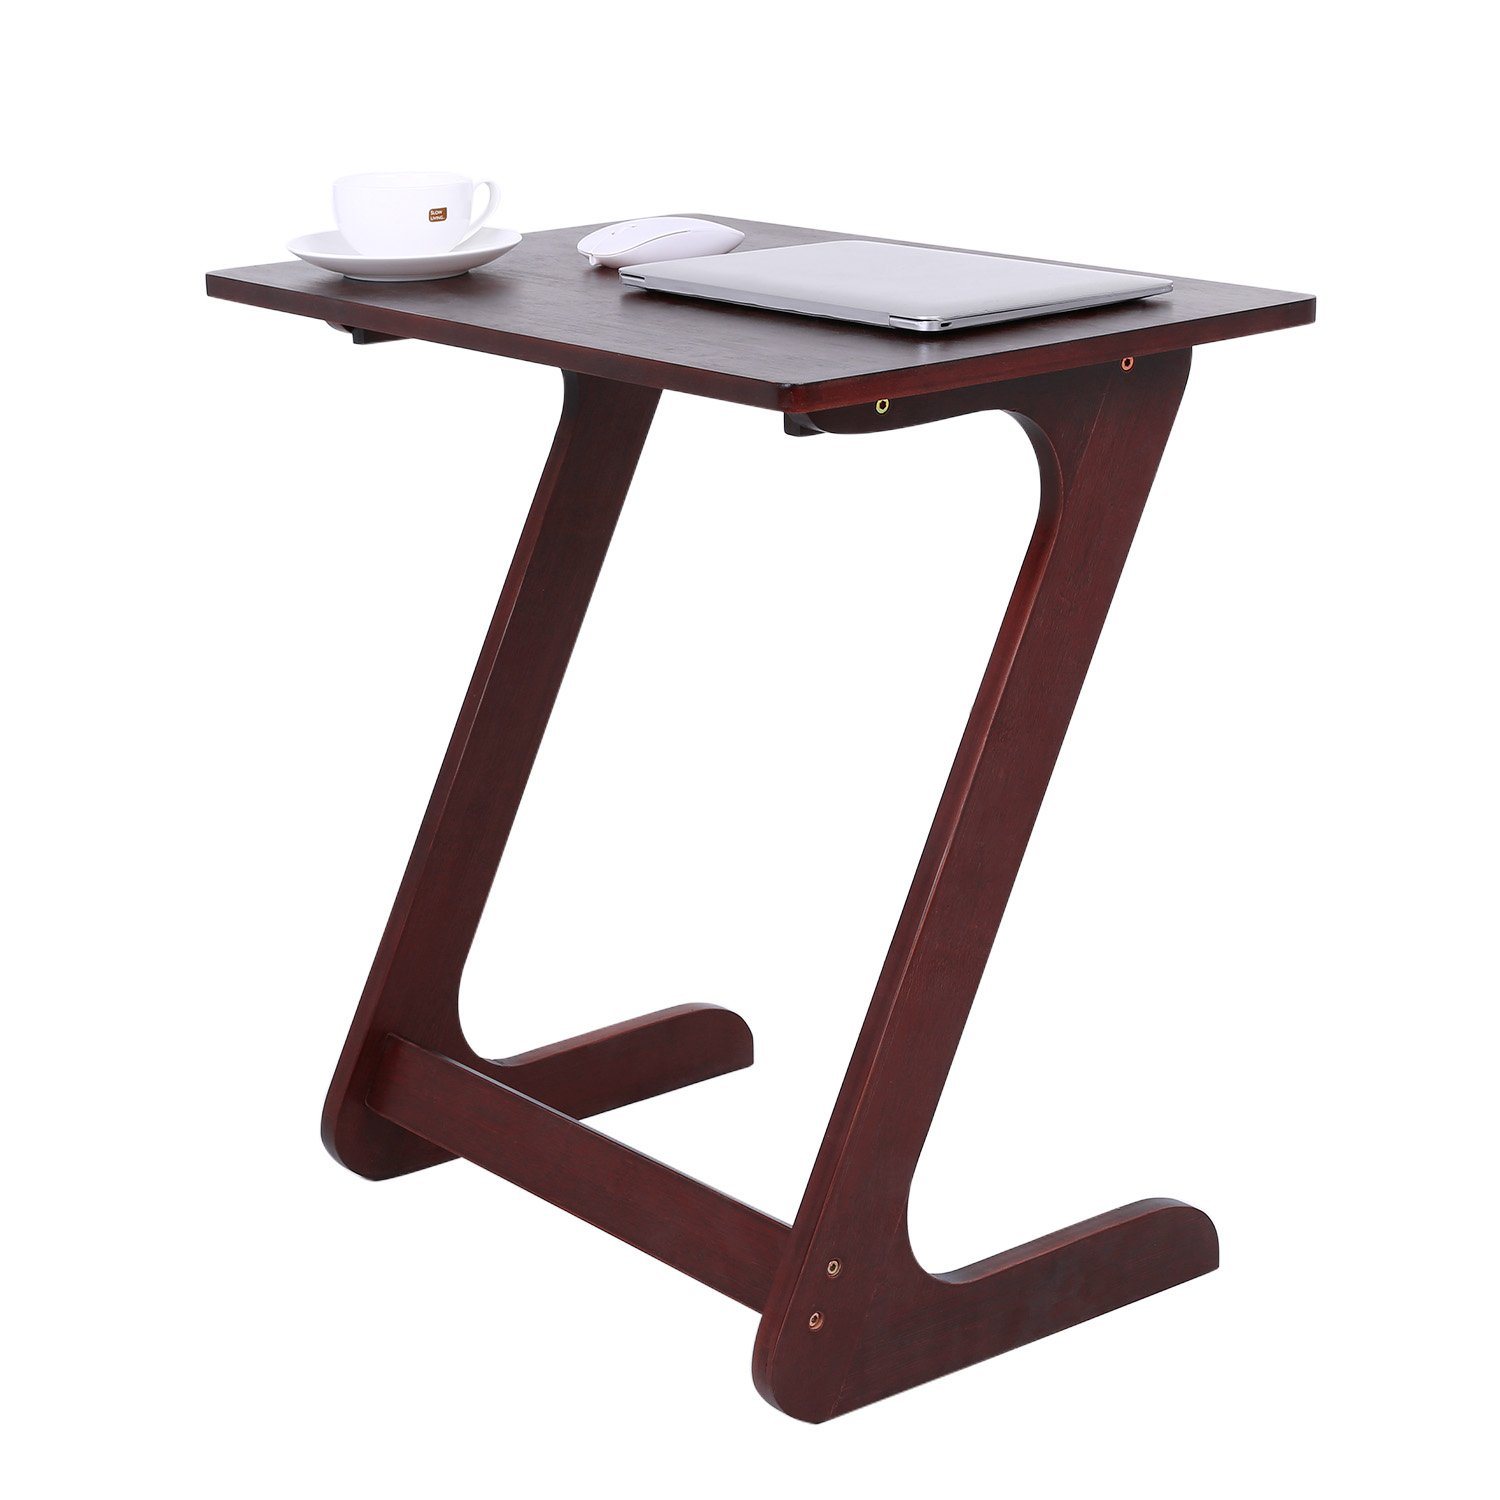 Z Style Portable Stable Wood Bamboo Over Sofa Snack Table for Home TV Tray for Bed Sofa Eating Writing Reading Living Room